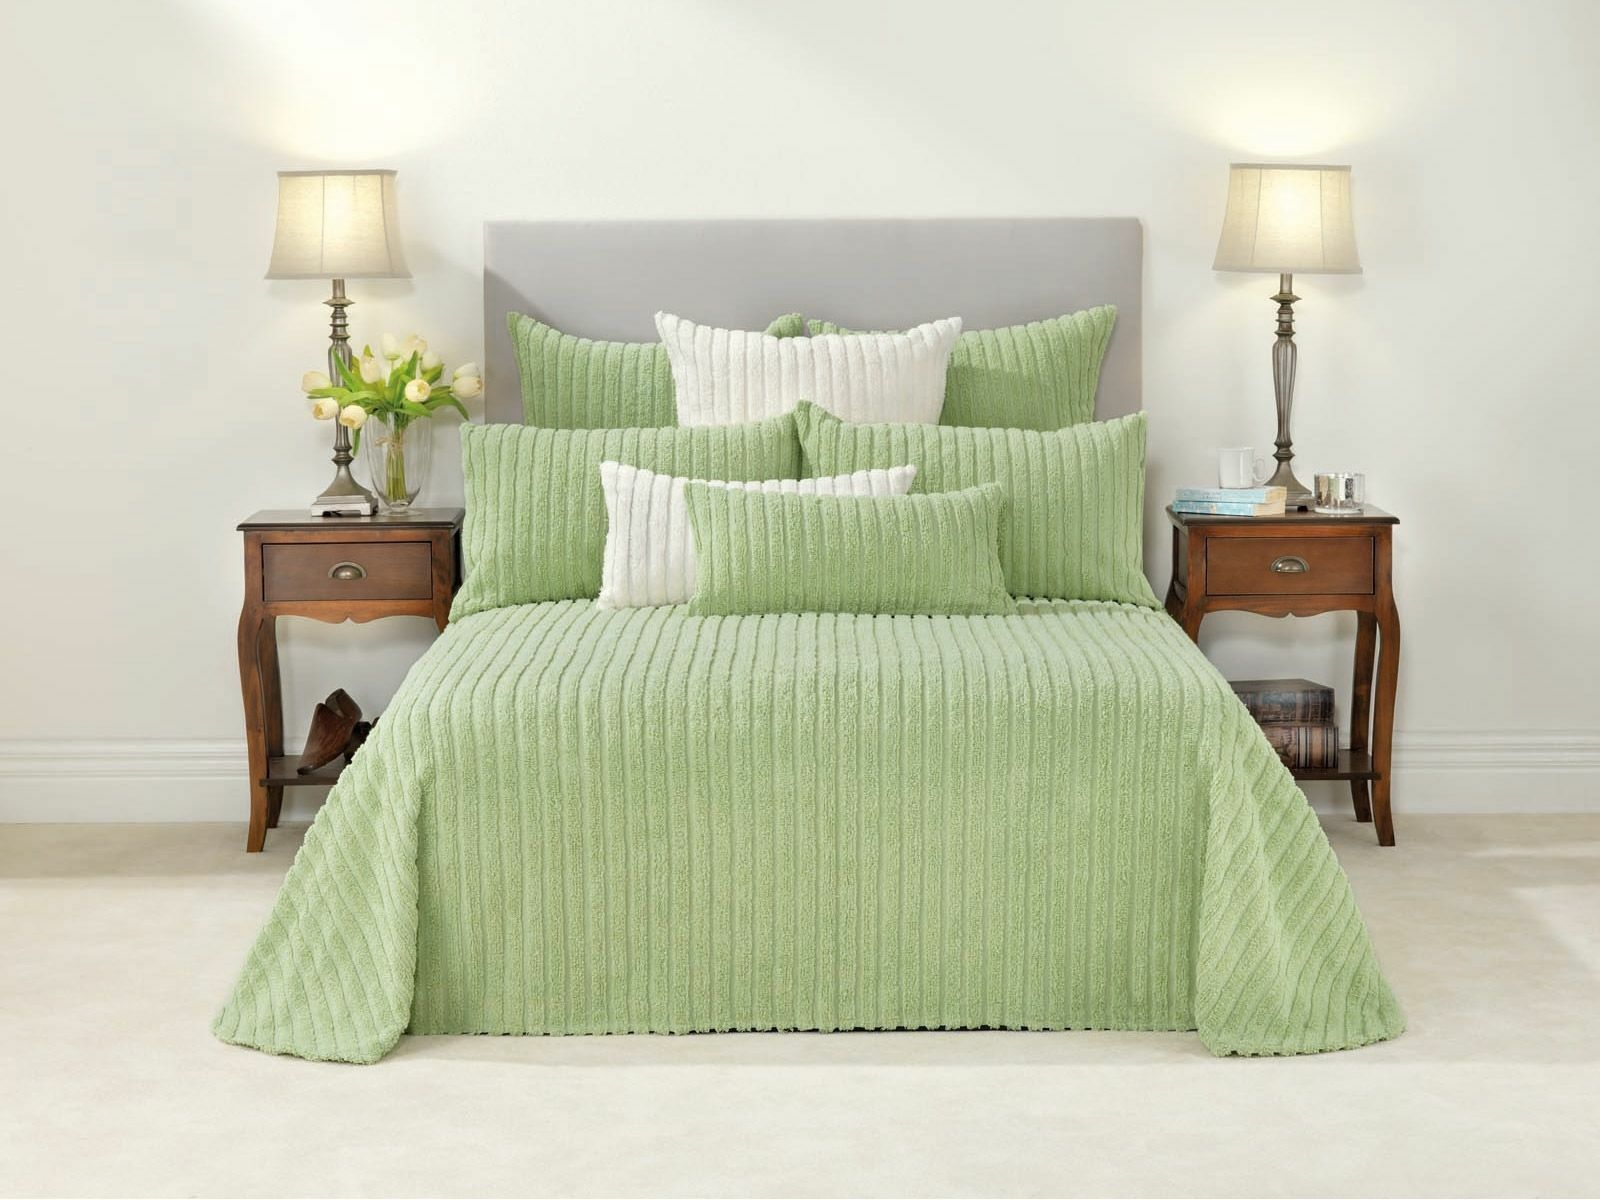 Bianca Chelsea Celadon Cotton Chenille Light verde Bedspread Set